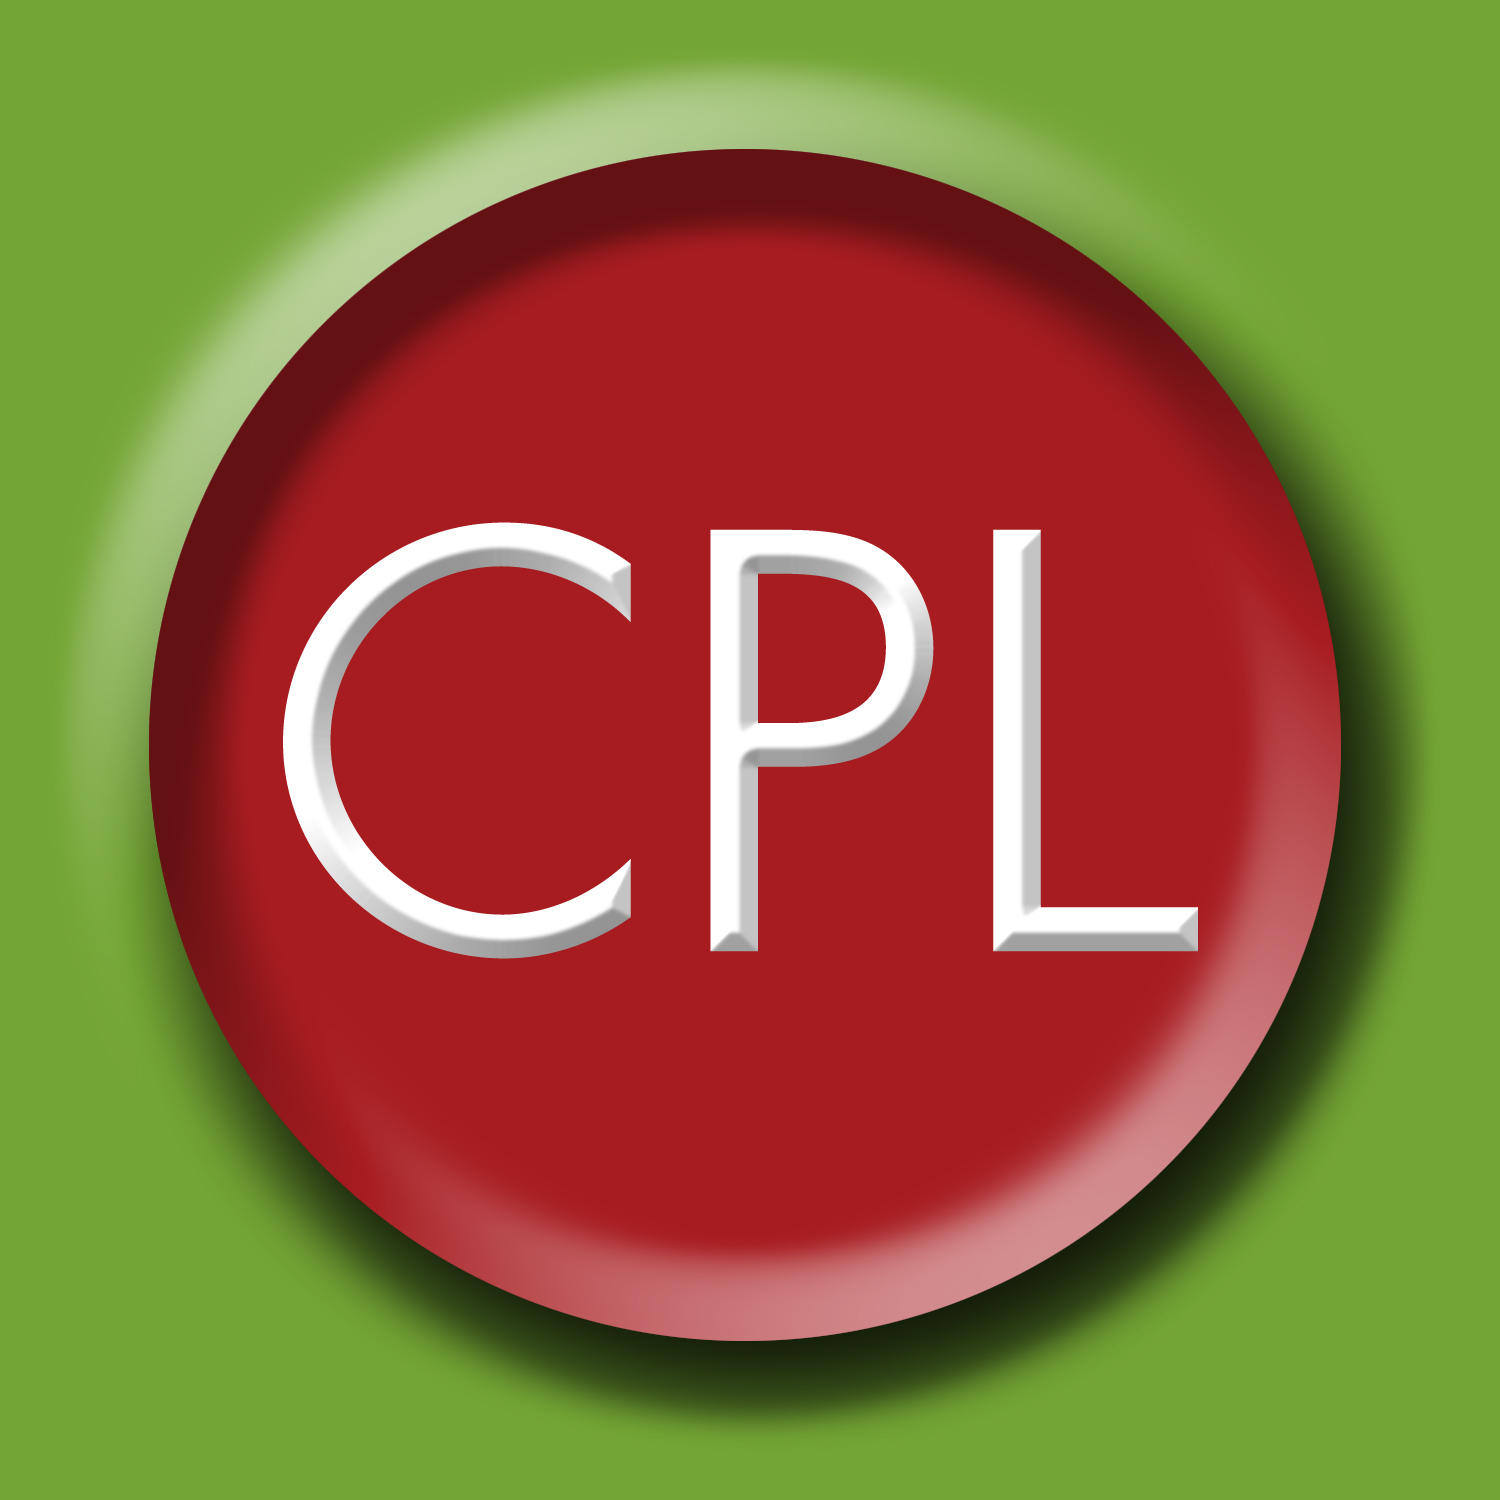 CPL Scientific Group Limited Logo